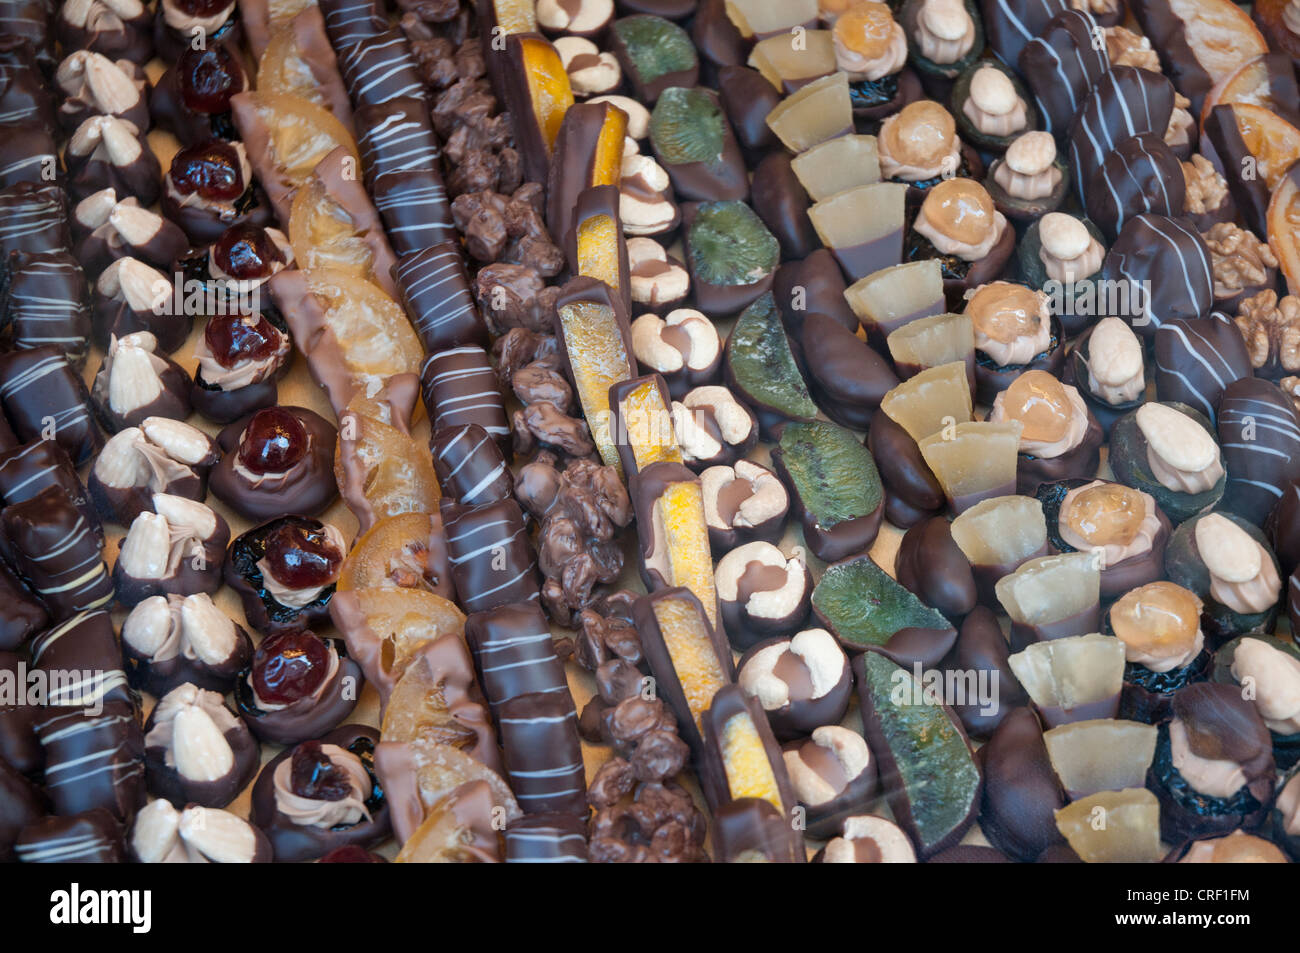 Hand-crafted chocolates displayed in the window of a confectioner in Munich - Stock Image